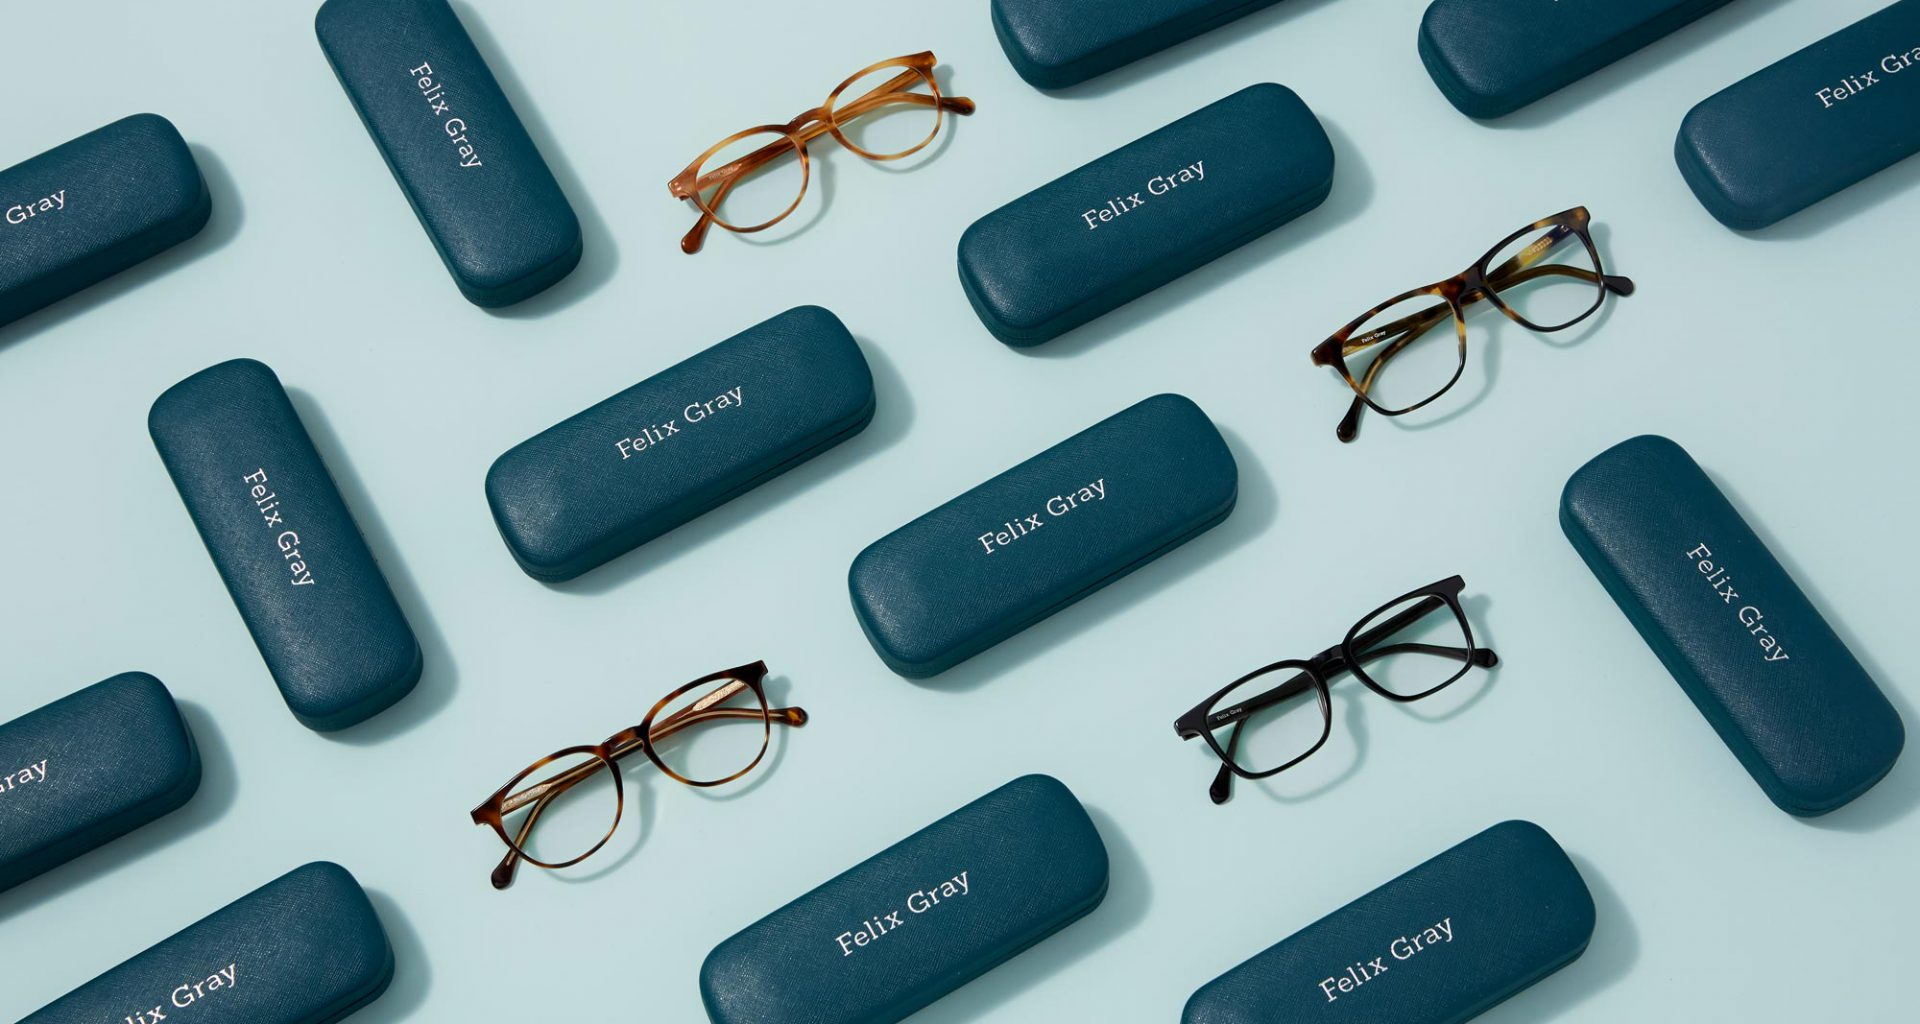 A variety of eyeglasses and teal glasses cases on a blue background.